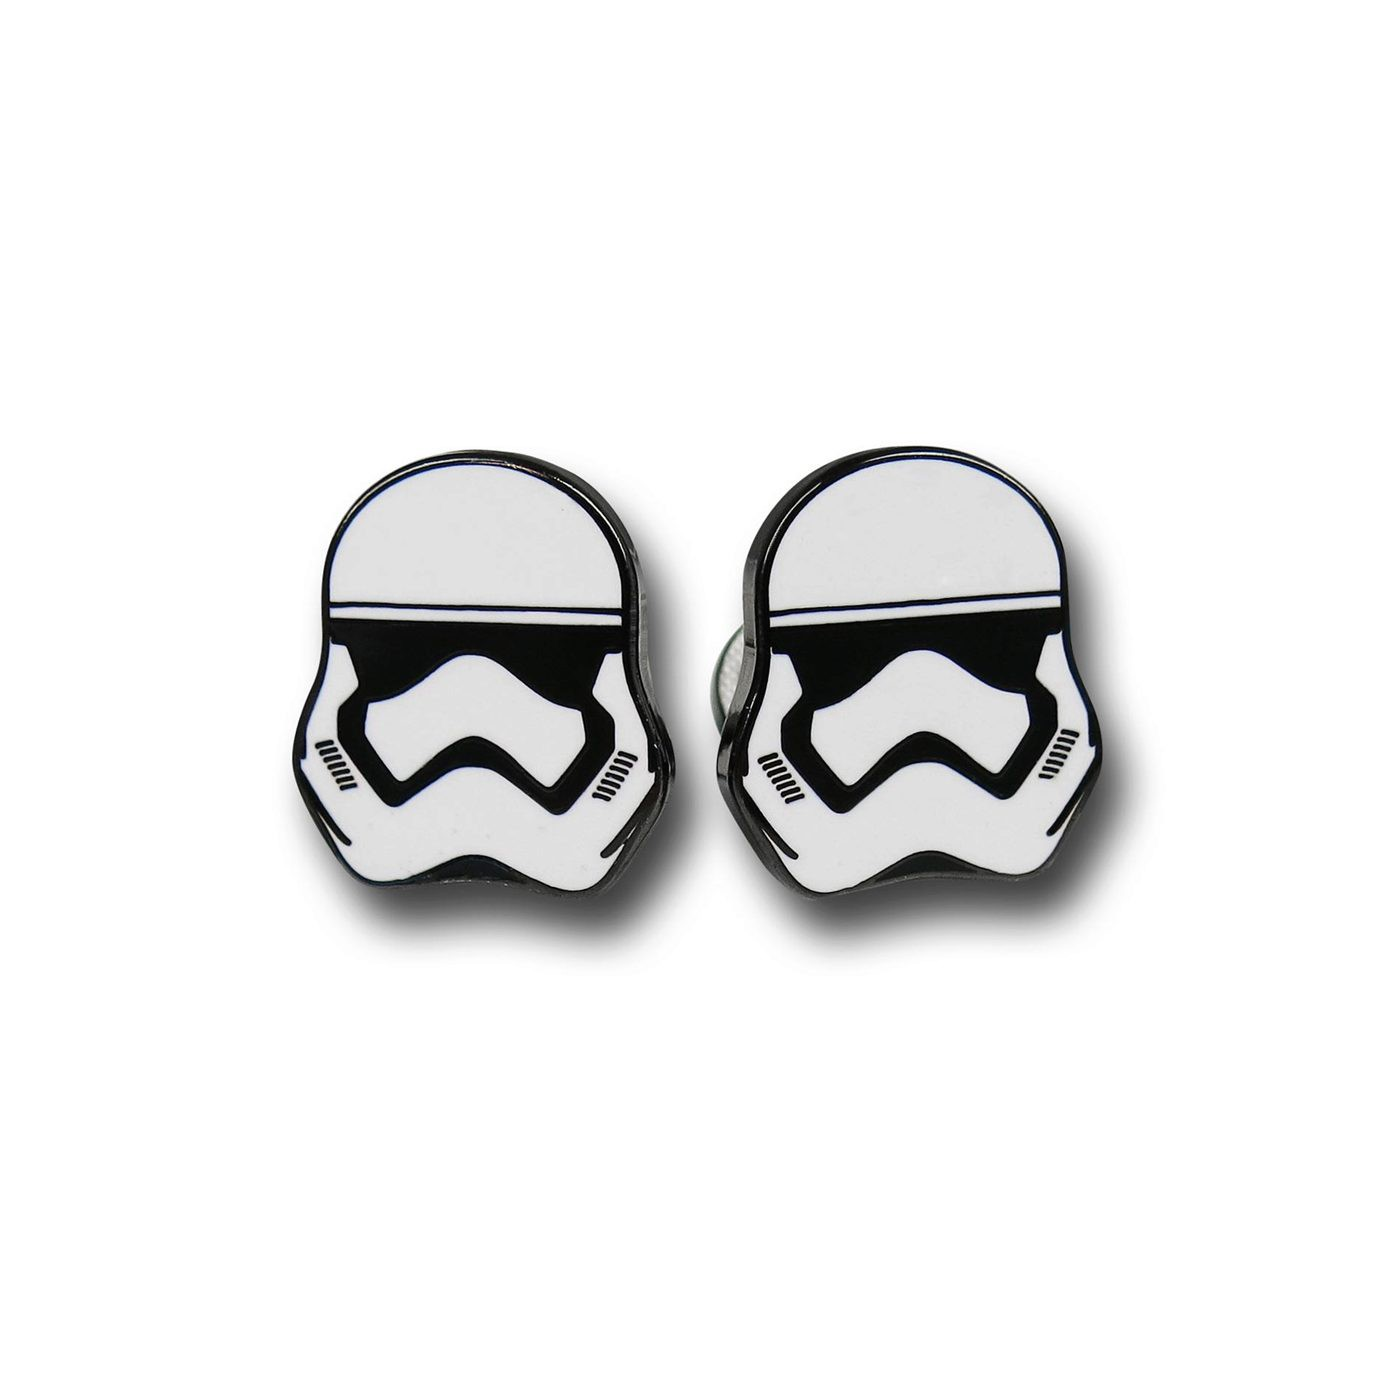 Star Wars Force Awakens Stormtrooper Cufflinks